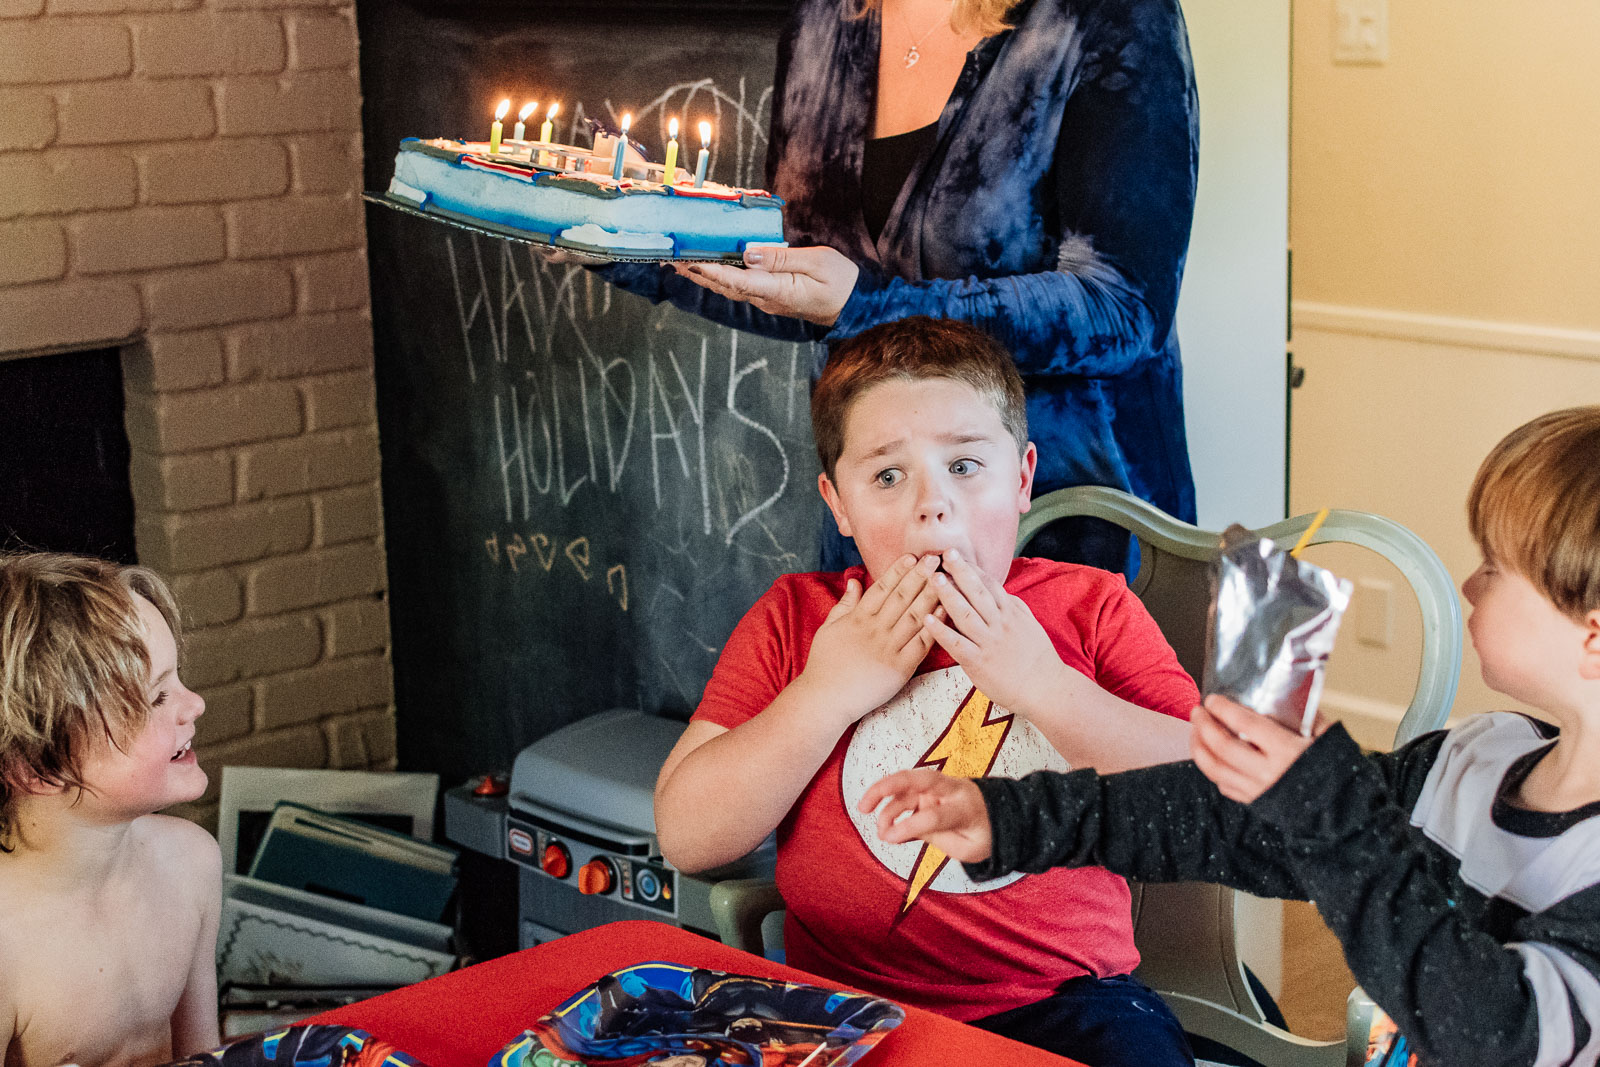 A young boy looks surprised as his mom brings out his birthday cake in Oakland, CA